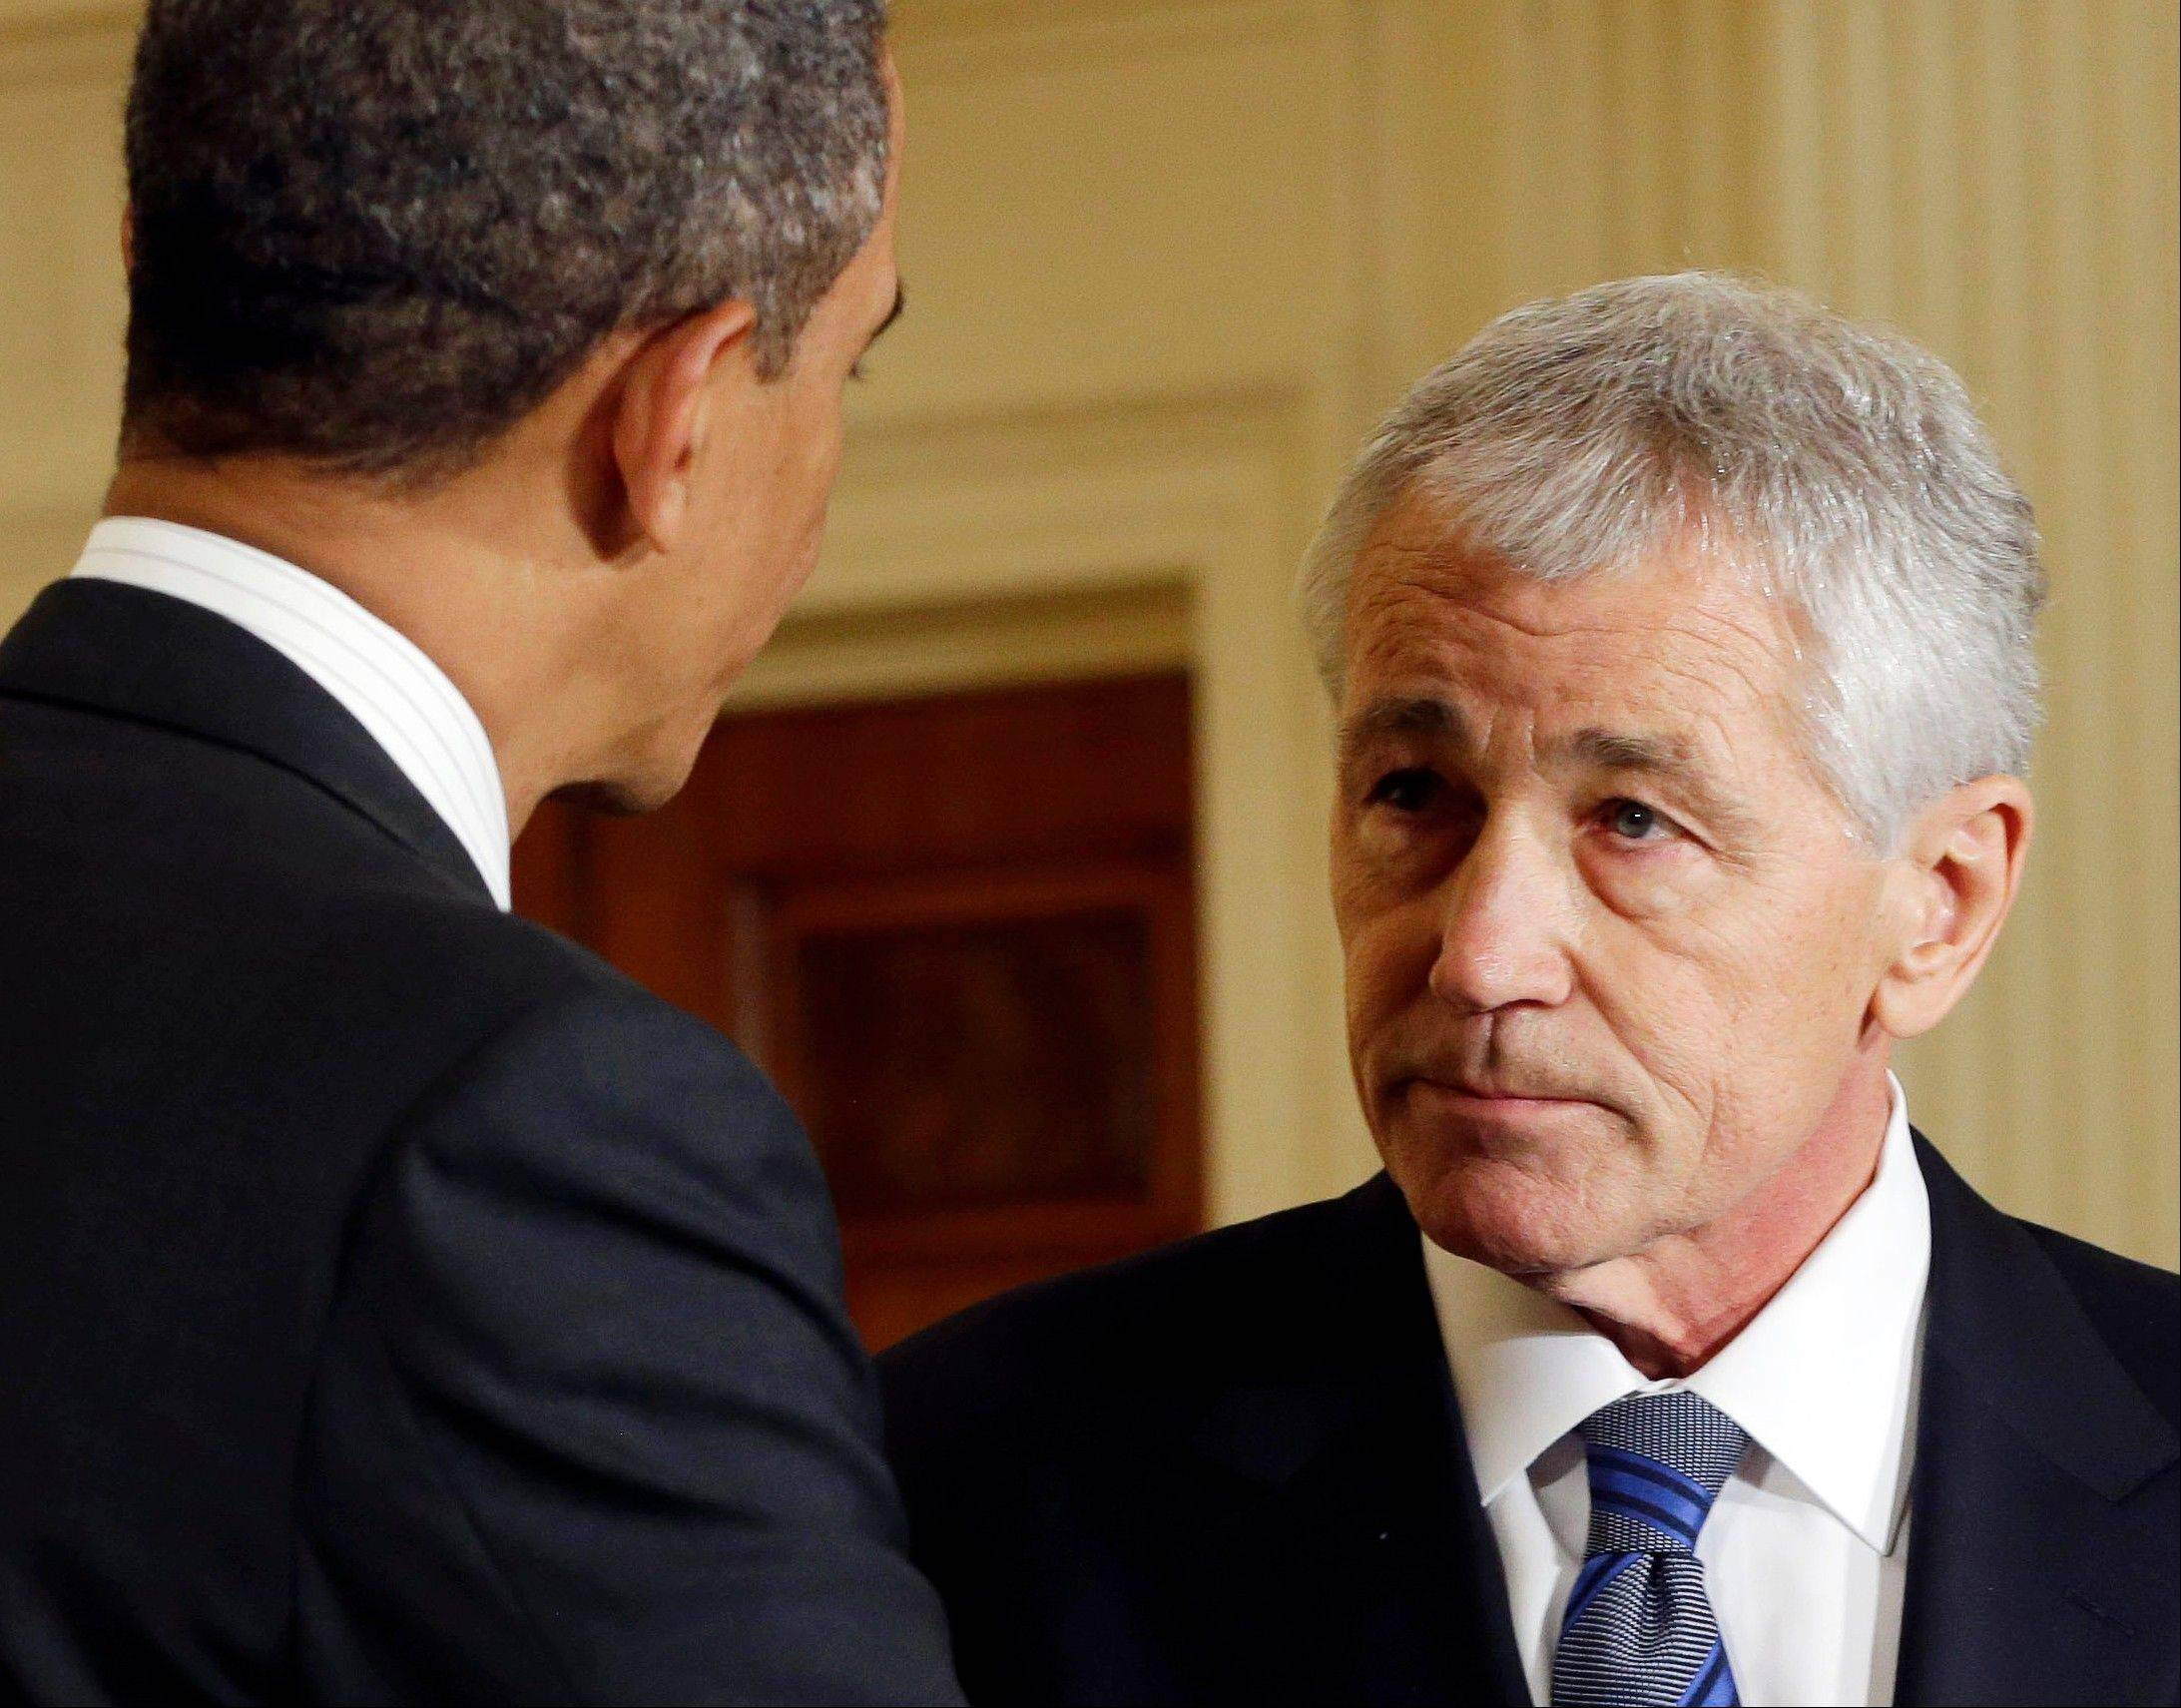 Chuck Hagel, the likely next secretary of defense, would be the first to enter the Pentagon as a public advocate for sharply reducing the number of U.S. nuclear weapons, possibly without equivalent cuts by Russia. He supports an international movement called Global Zero that favors eliminating all nuclear weapons. That puts him outside the orthodoxy embraced by many of his fellow Republicans but inside a widening circle of national security thinkers � including President Barack Obama.